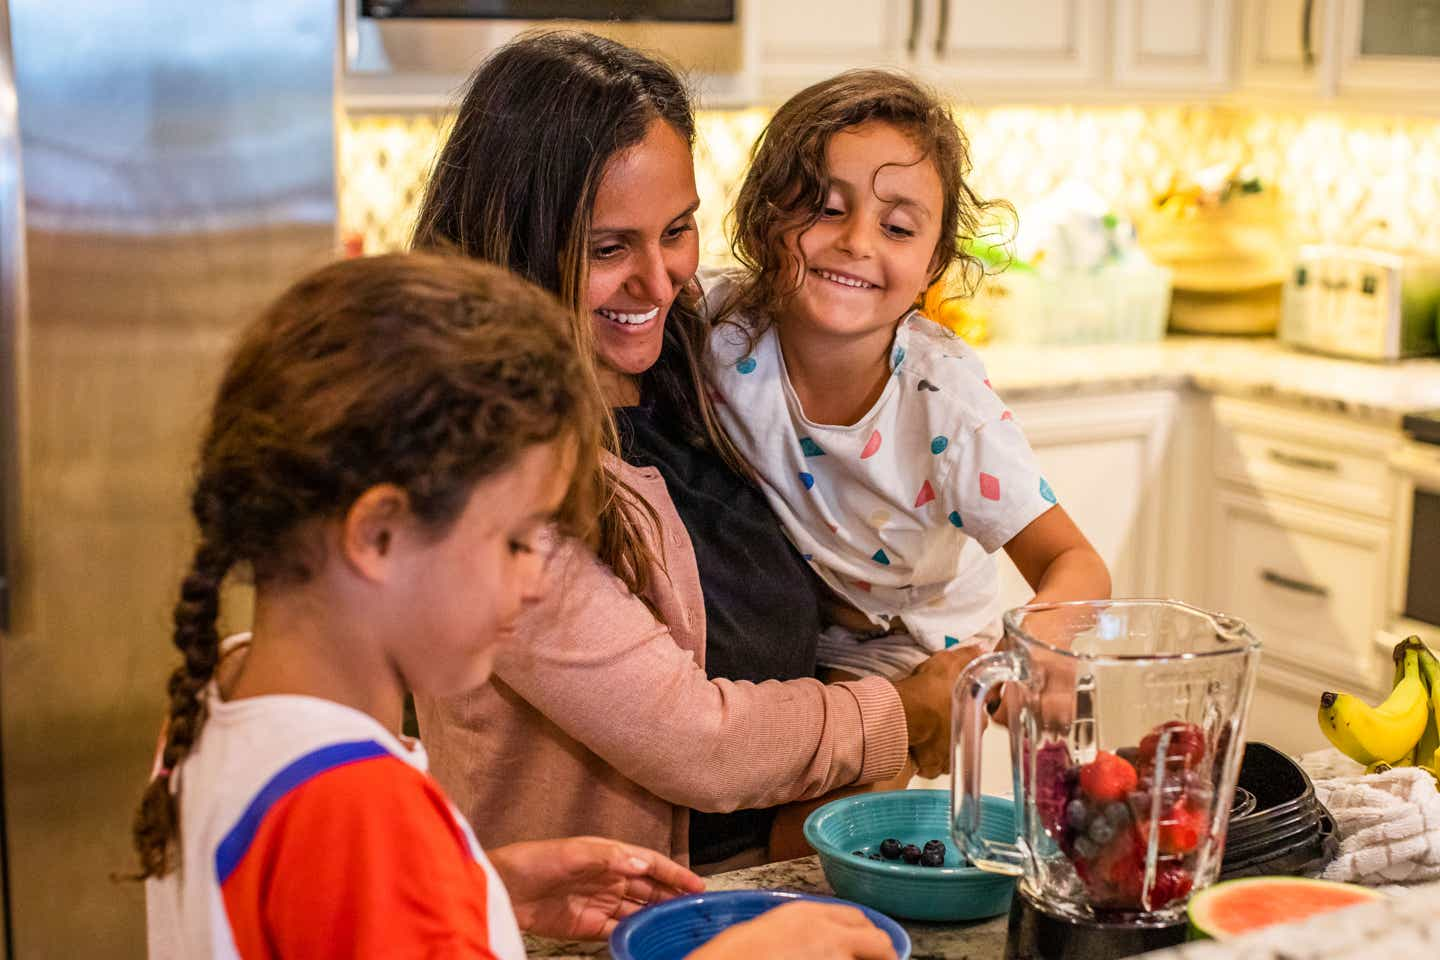 Brenda Rivera Sterns' family put mixed berries into a blender to make smoothies in the kitchen of our Signature Collection villa at our South Beach Resort in Myrtle Beach, South Carolina.